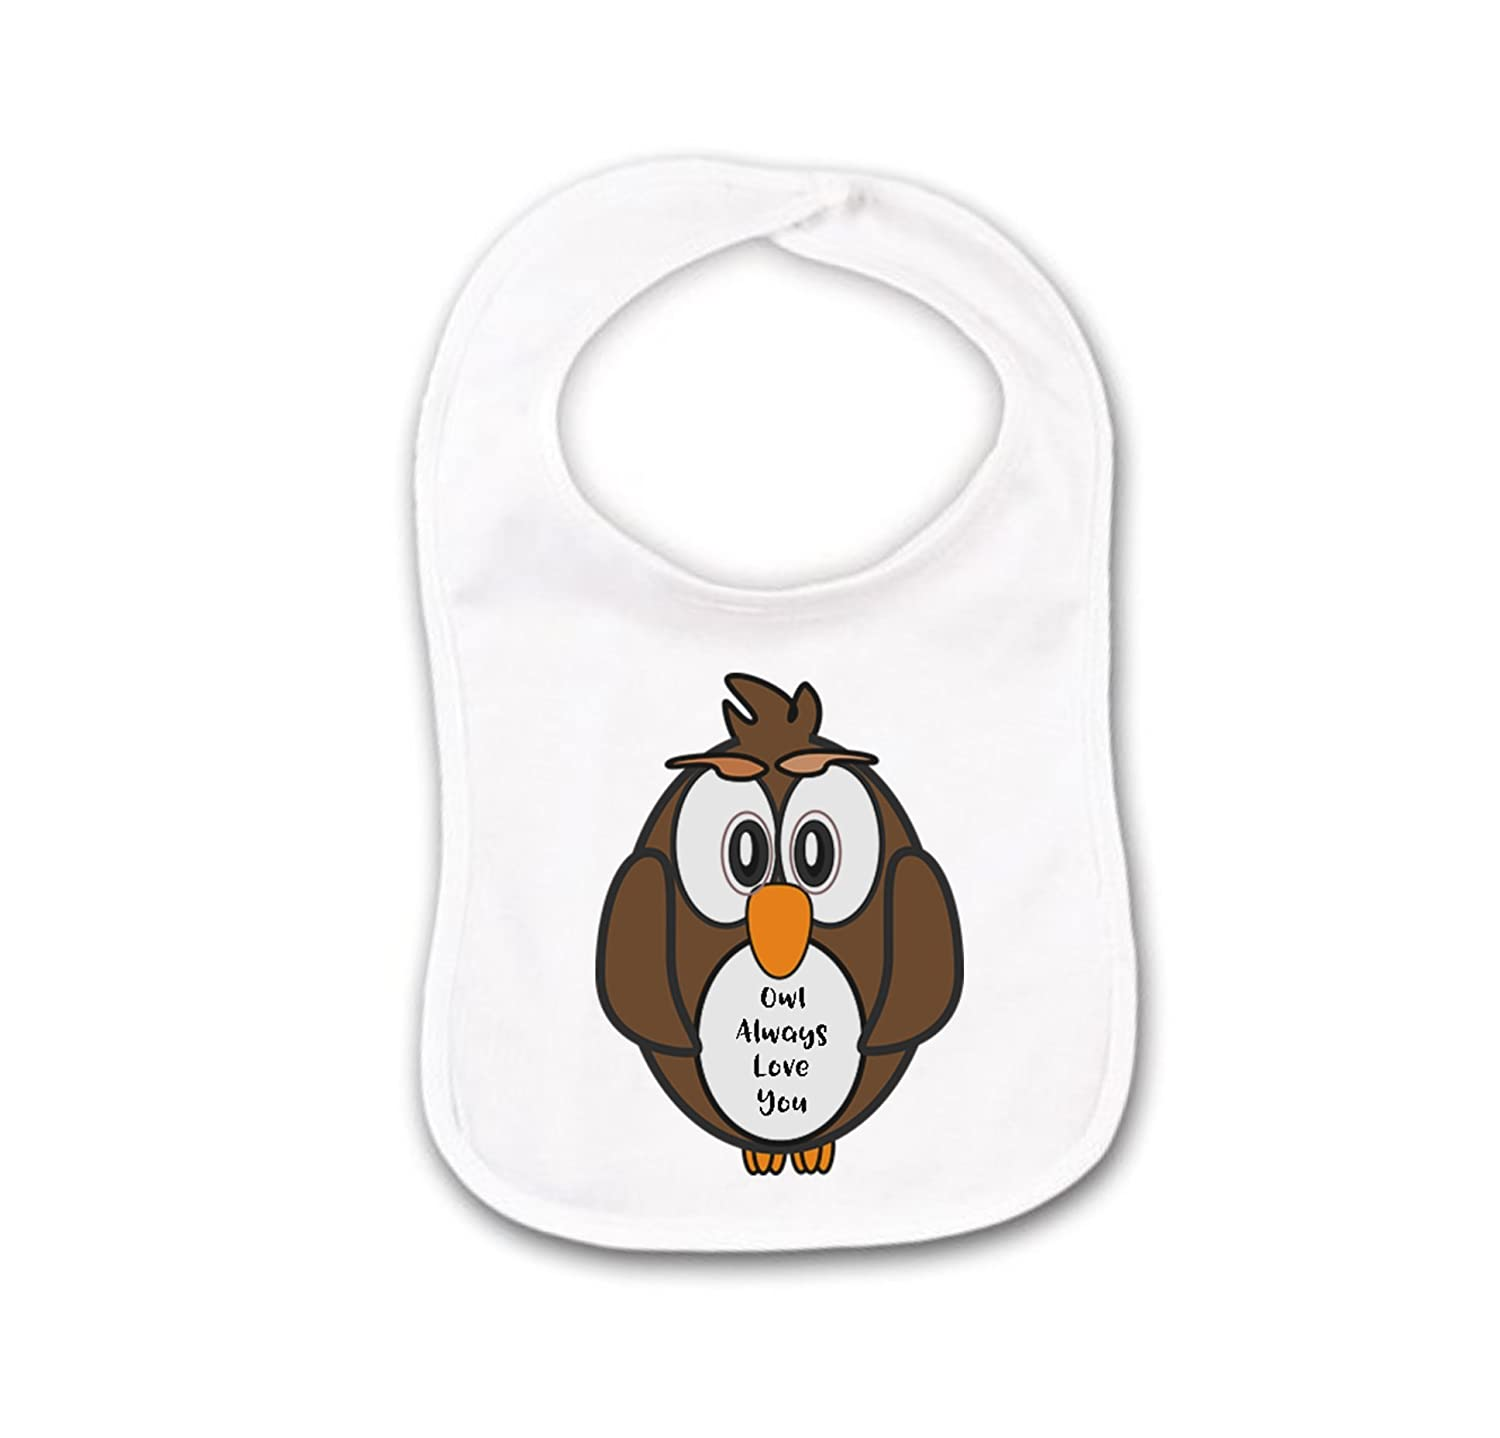 Owl Always Loves You Funny Baby Bib or Burp Cloth With Sayings